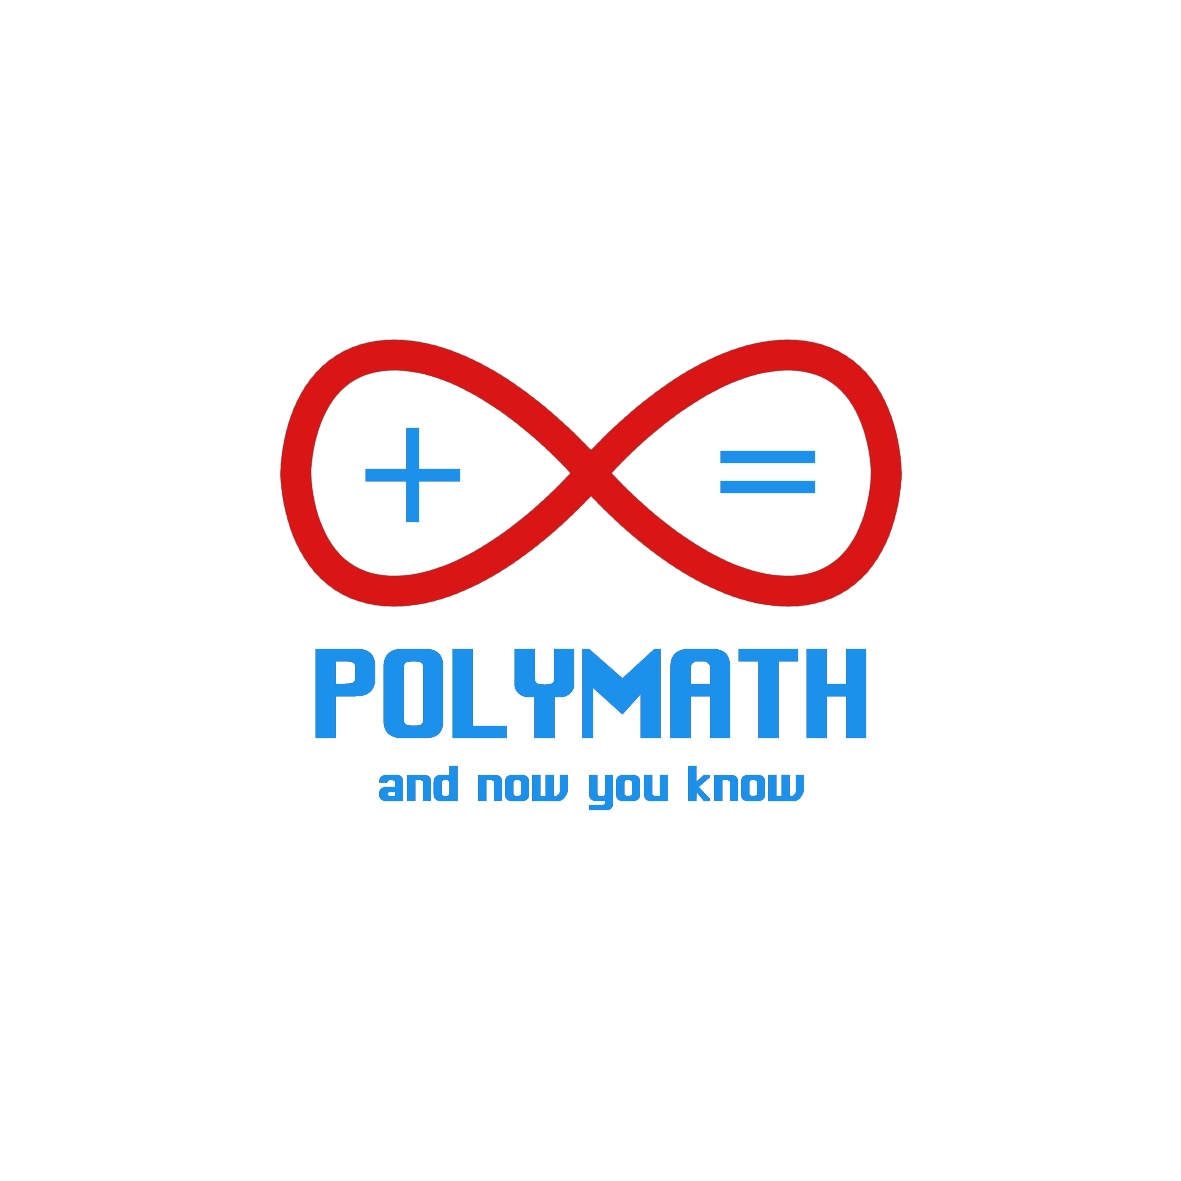 Logo Design by JaroslavProcka - Entry No. 63 in the Logo Design Contest Imaginative Logo Design for Polymath.